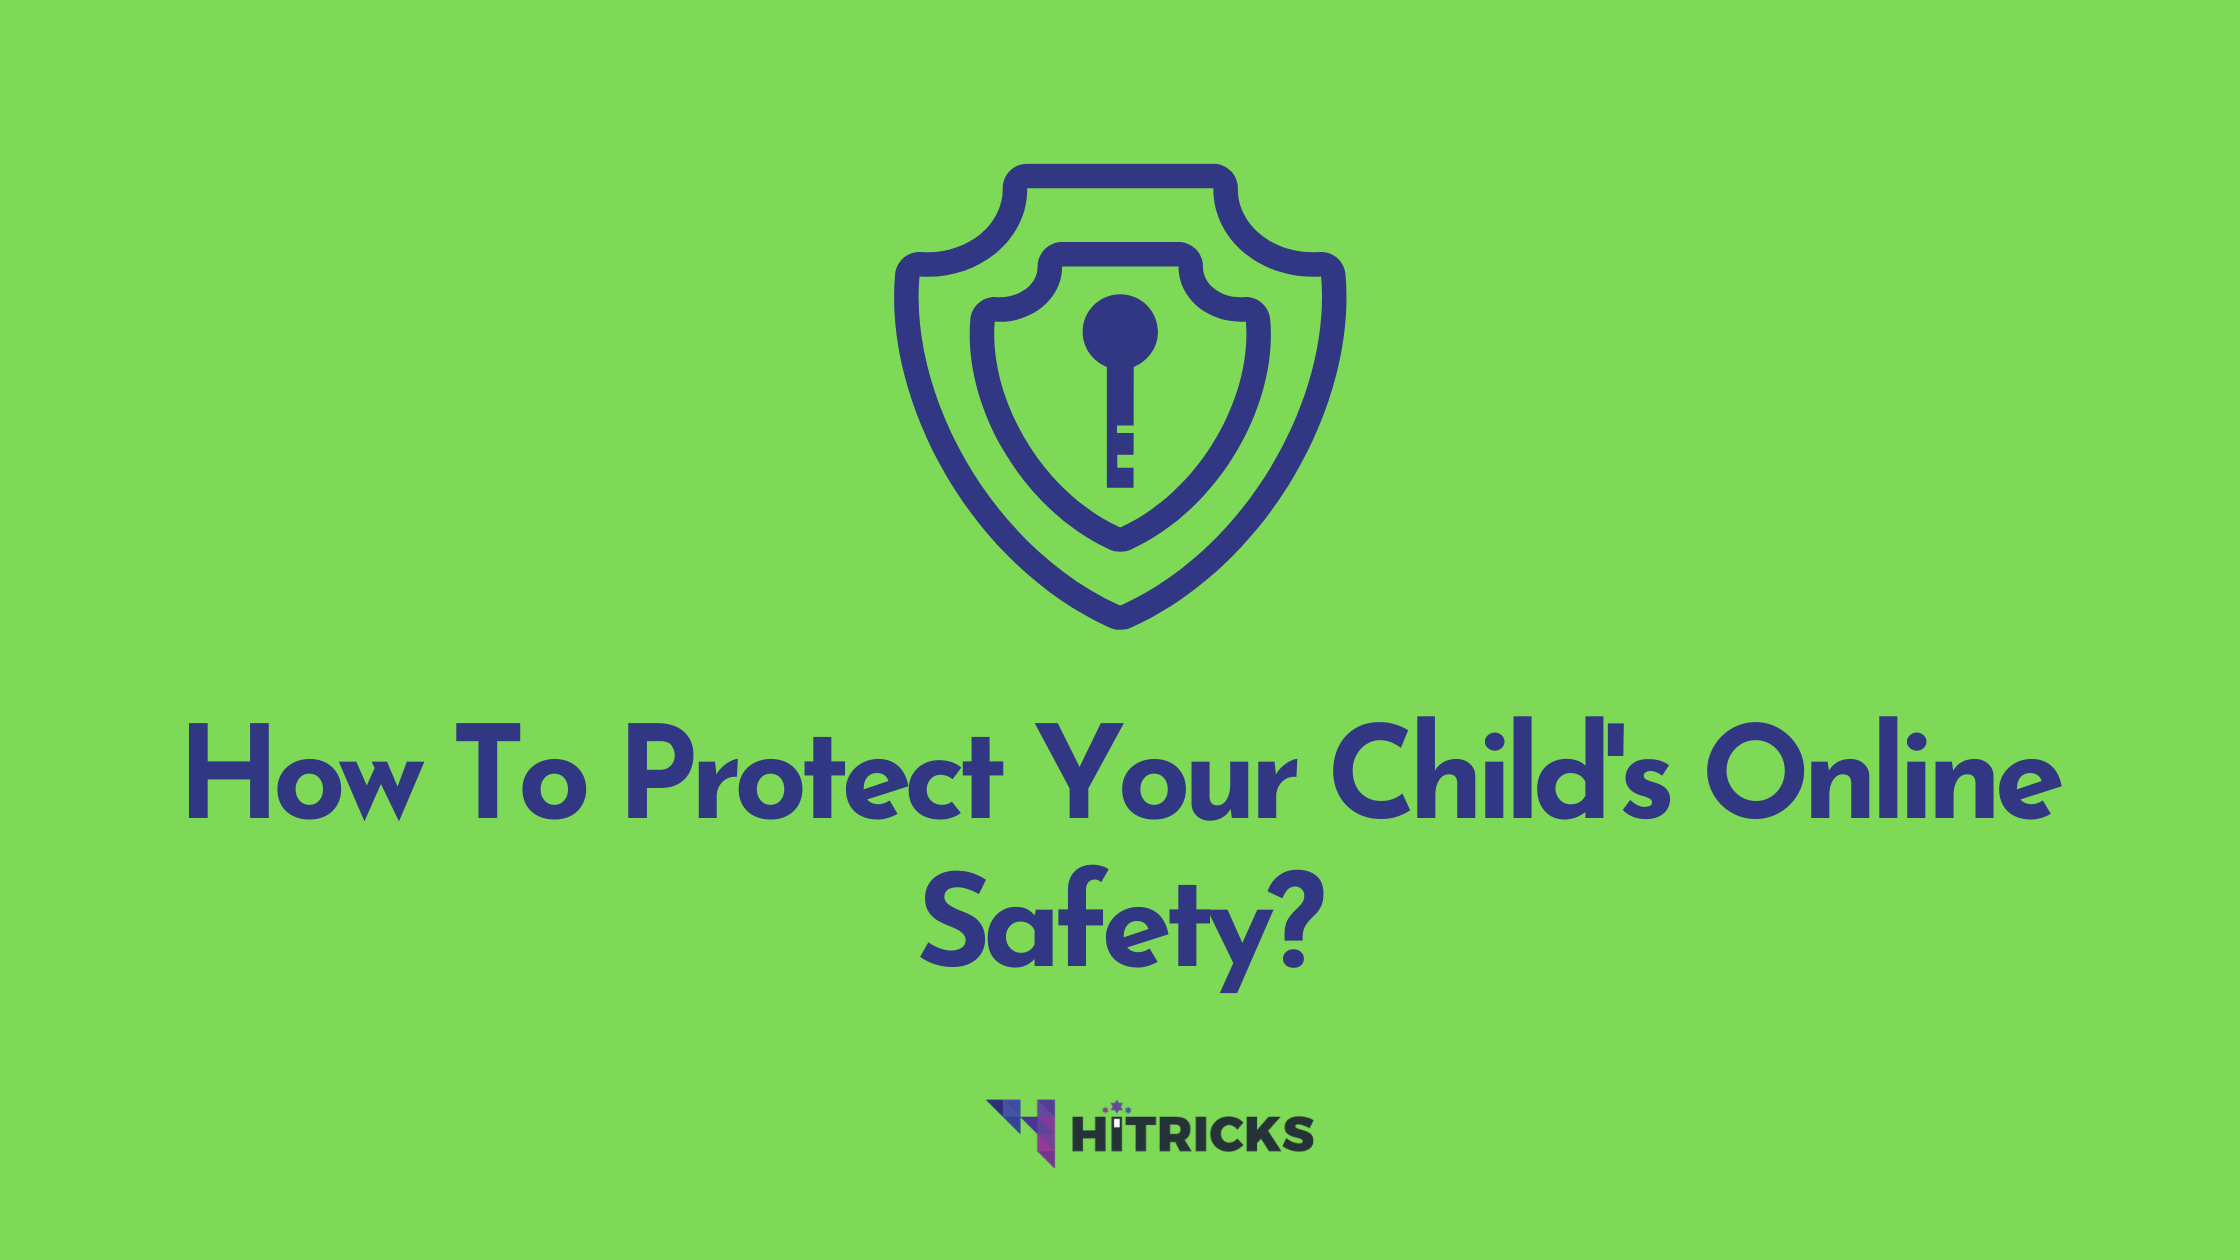 How To Protect Your Child's Online Safety?